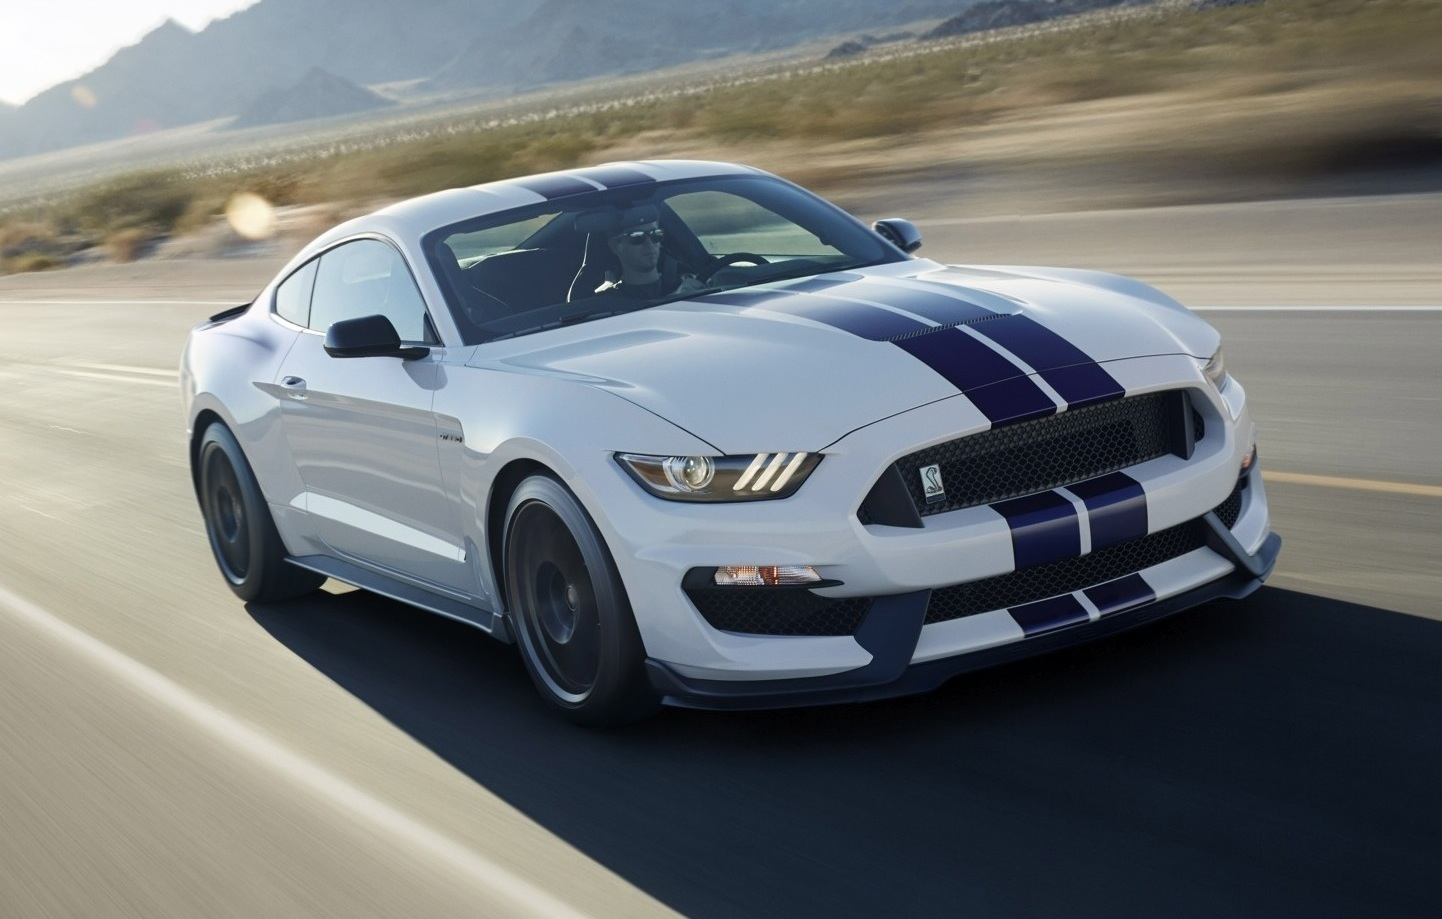 2015 Ford Shelby Gt350 #7